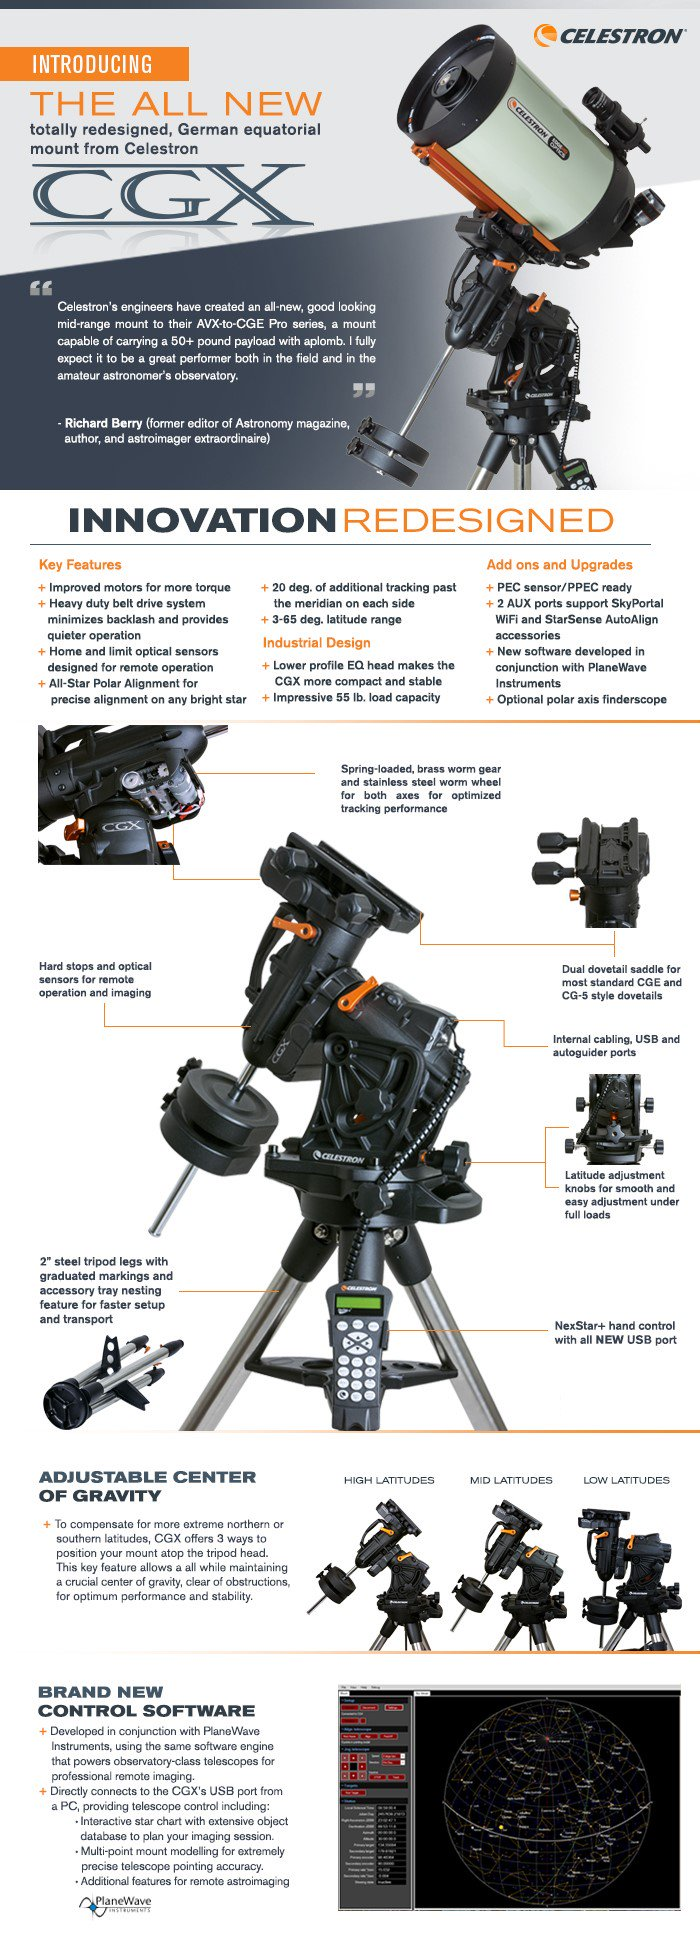 The new Celestron CGX